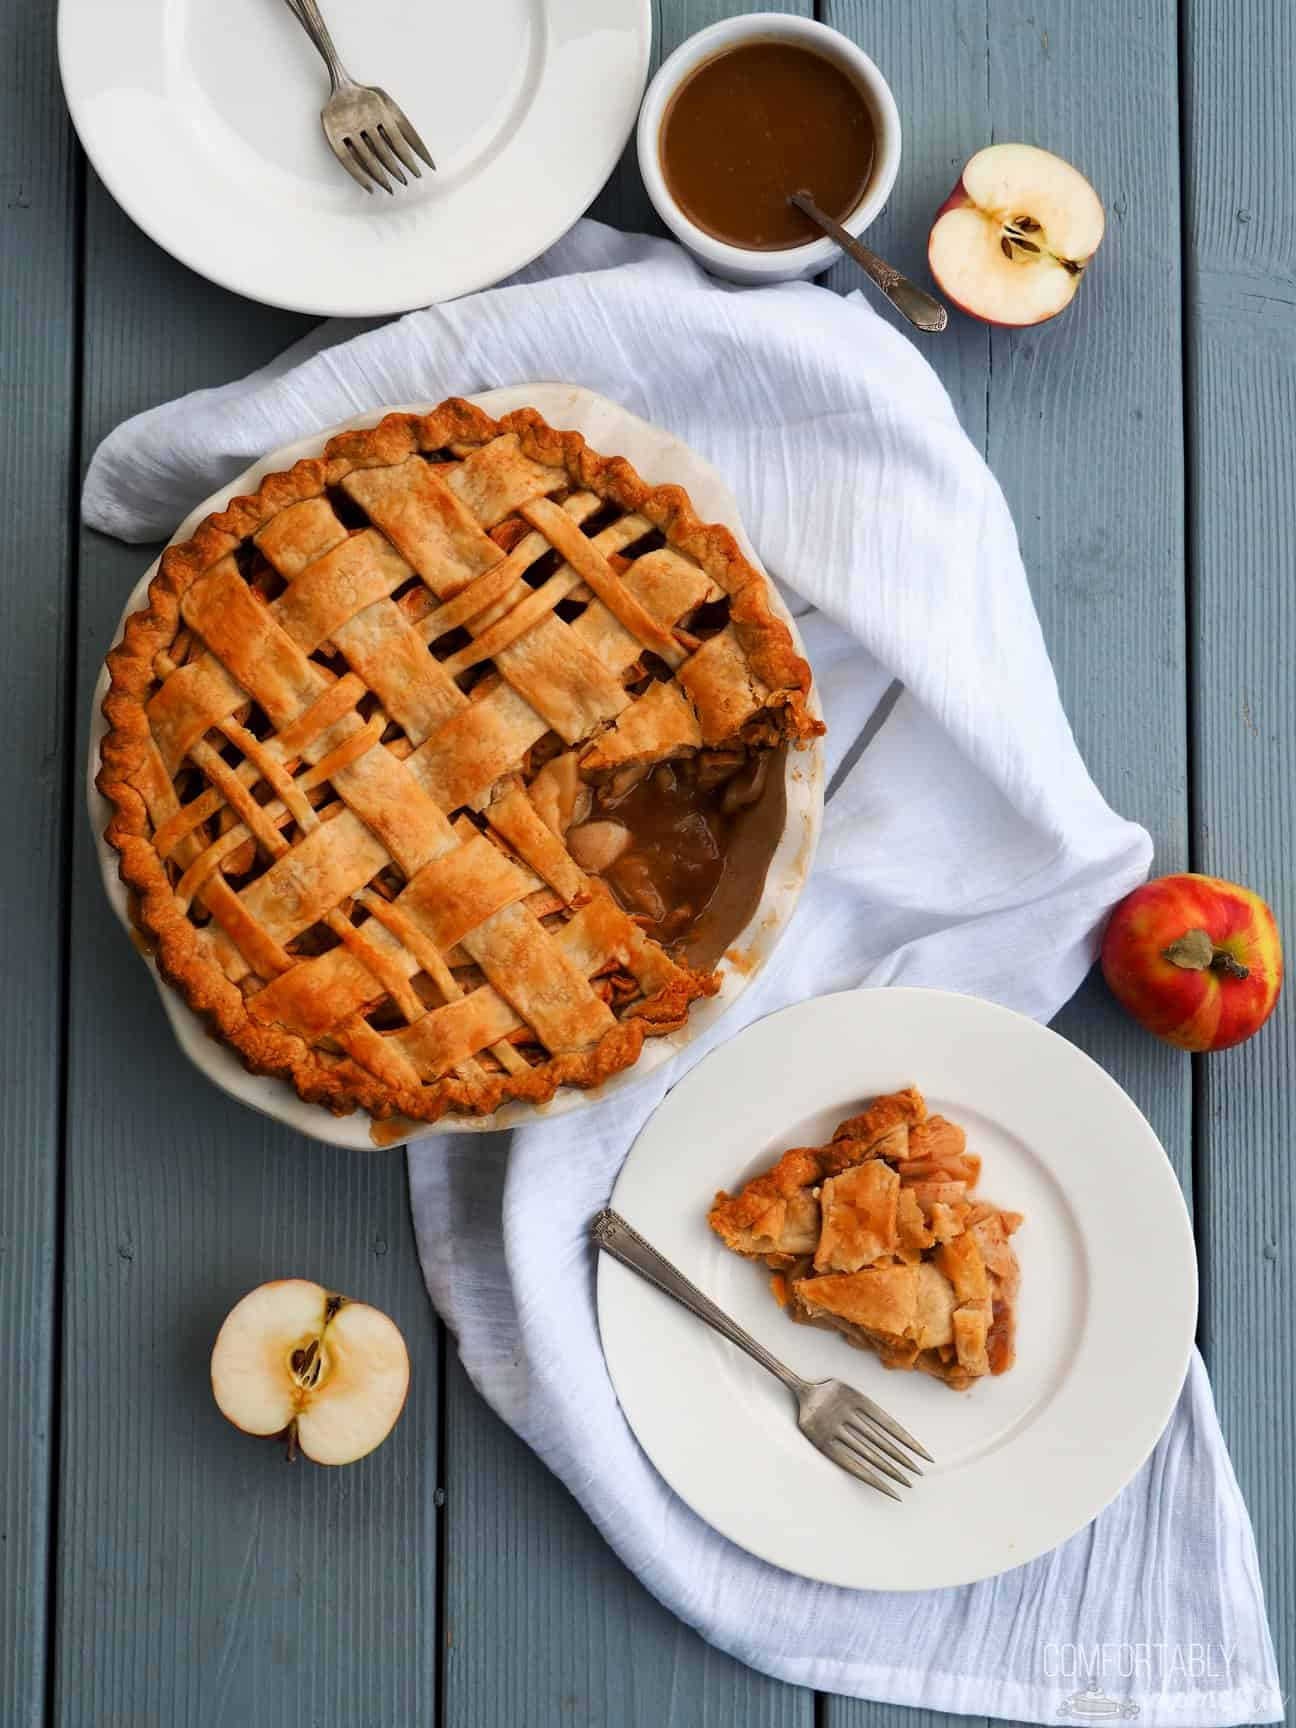 A Caramel Apple Pie with one slice cut out of it sits on a blue background on a white cloth, surrounded by apples, plates and caramel